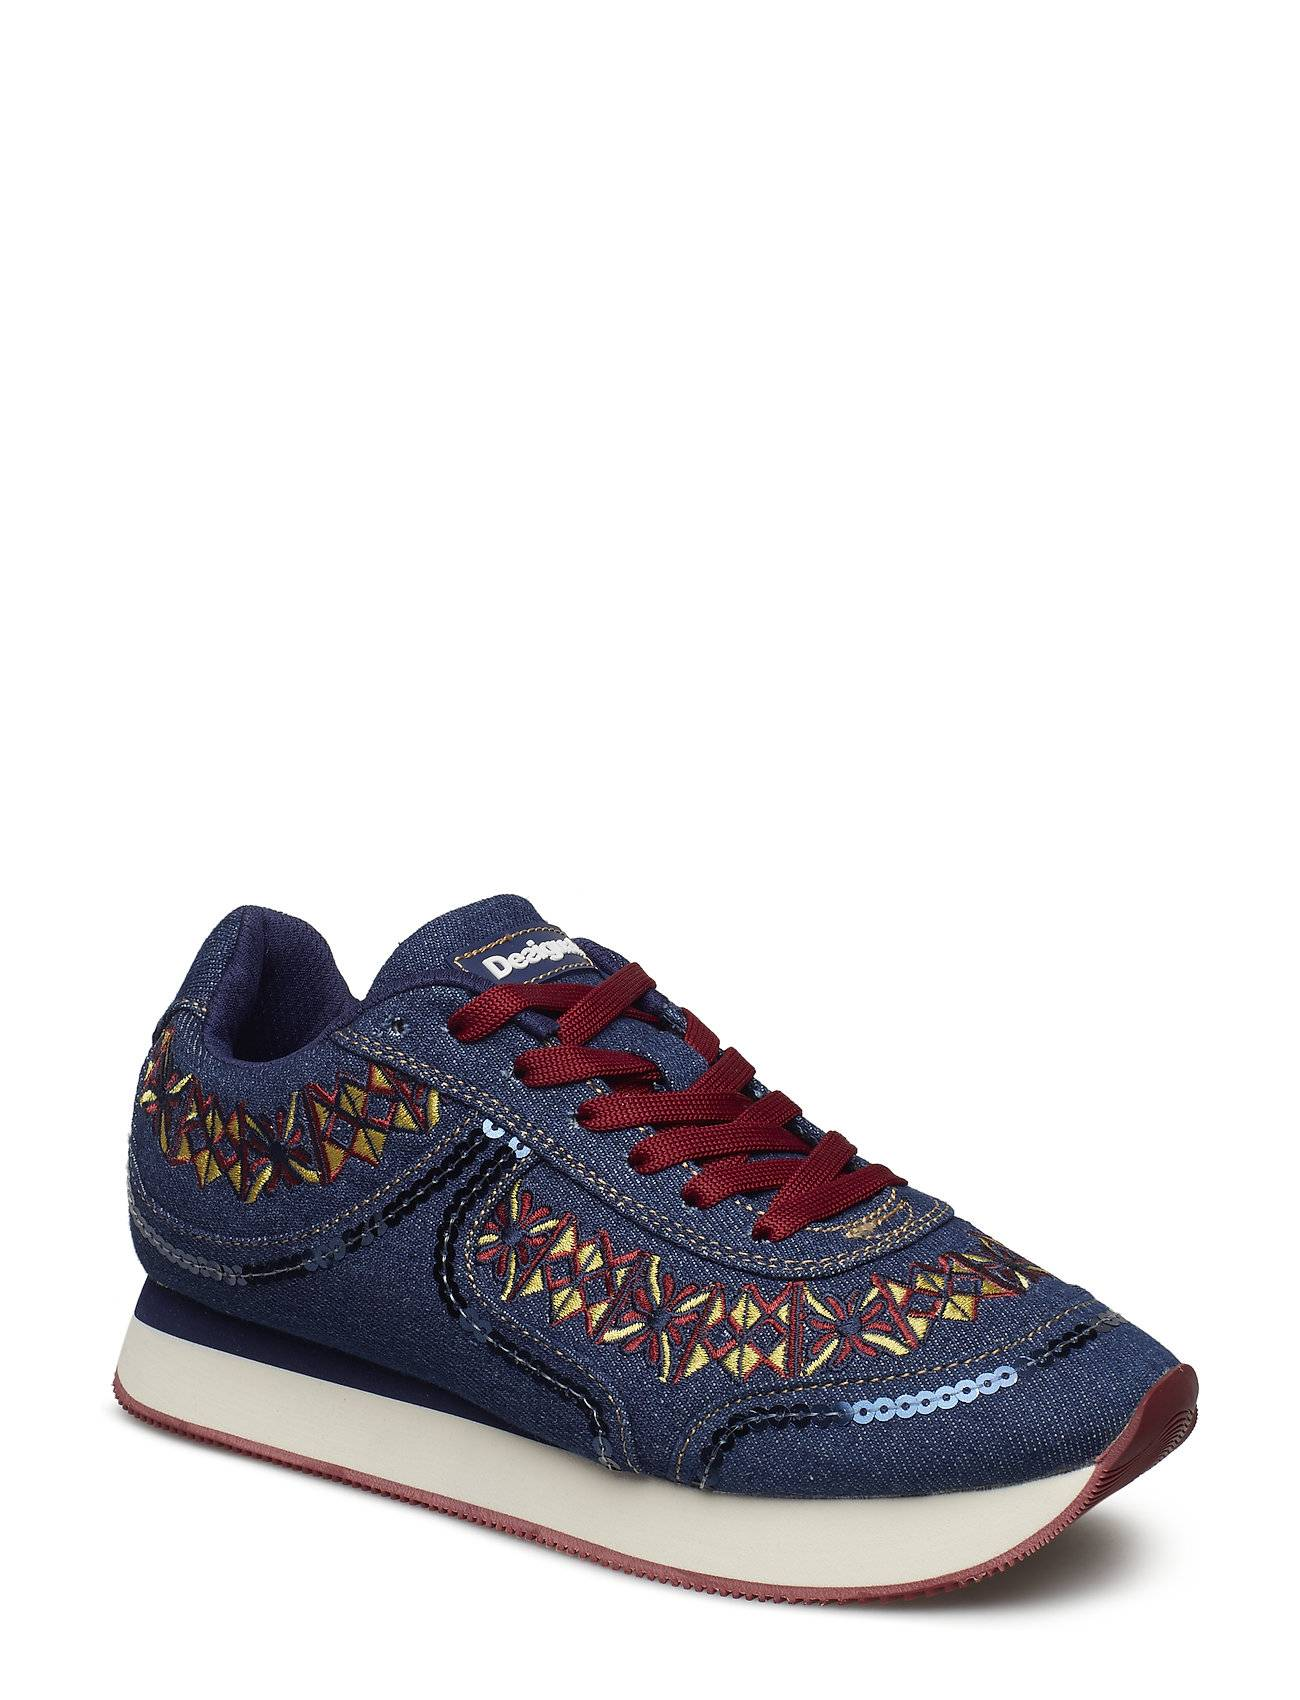 Desigual Shoes Shoes Galaxy